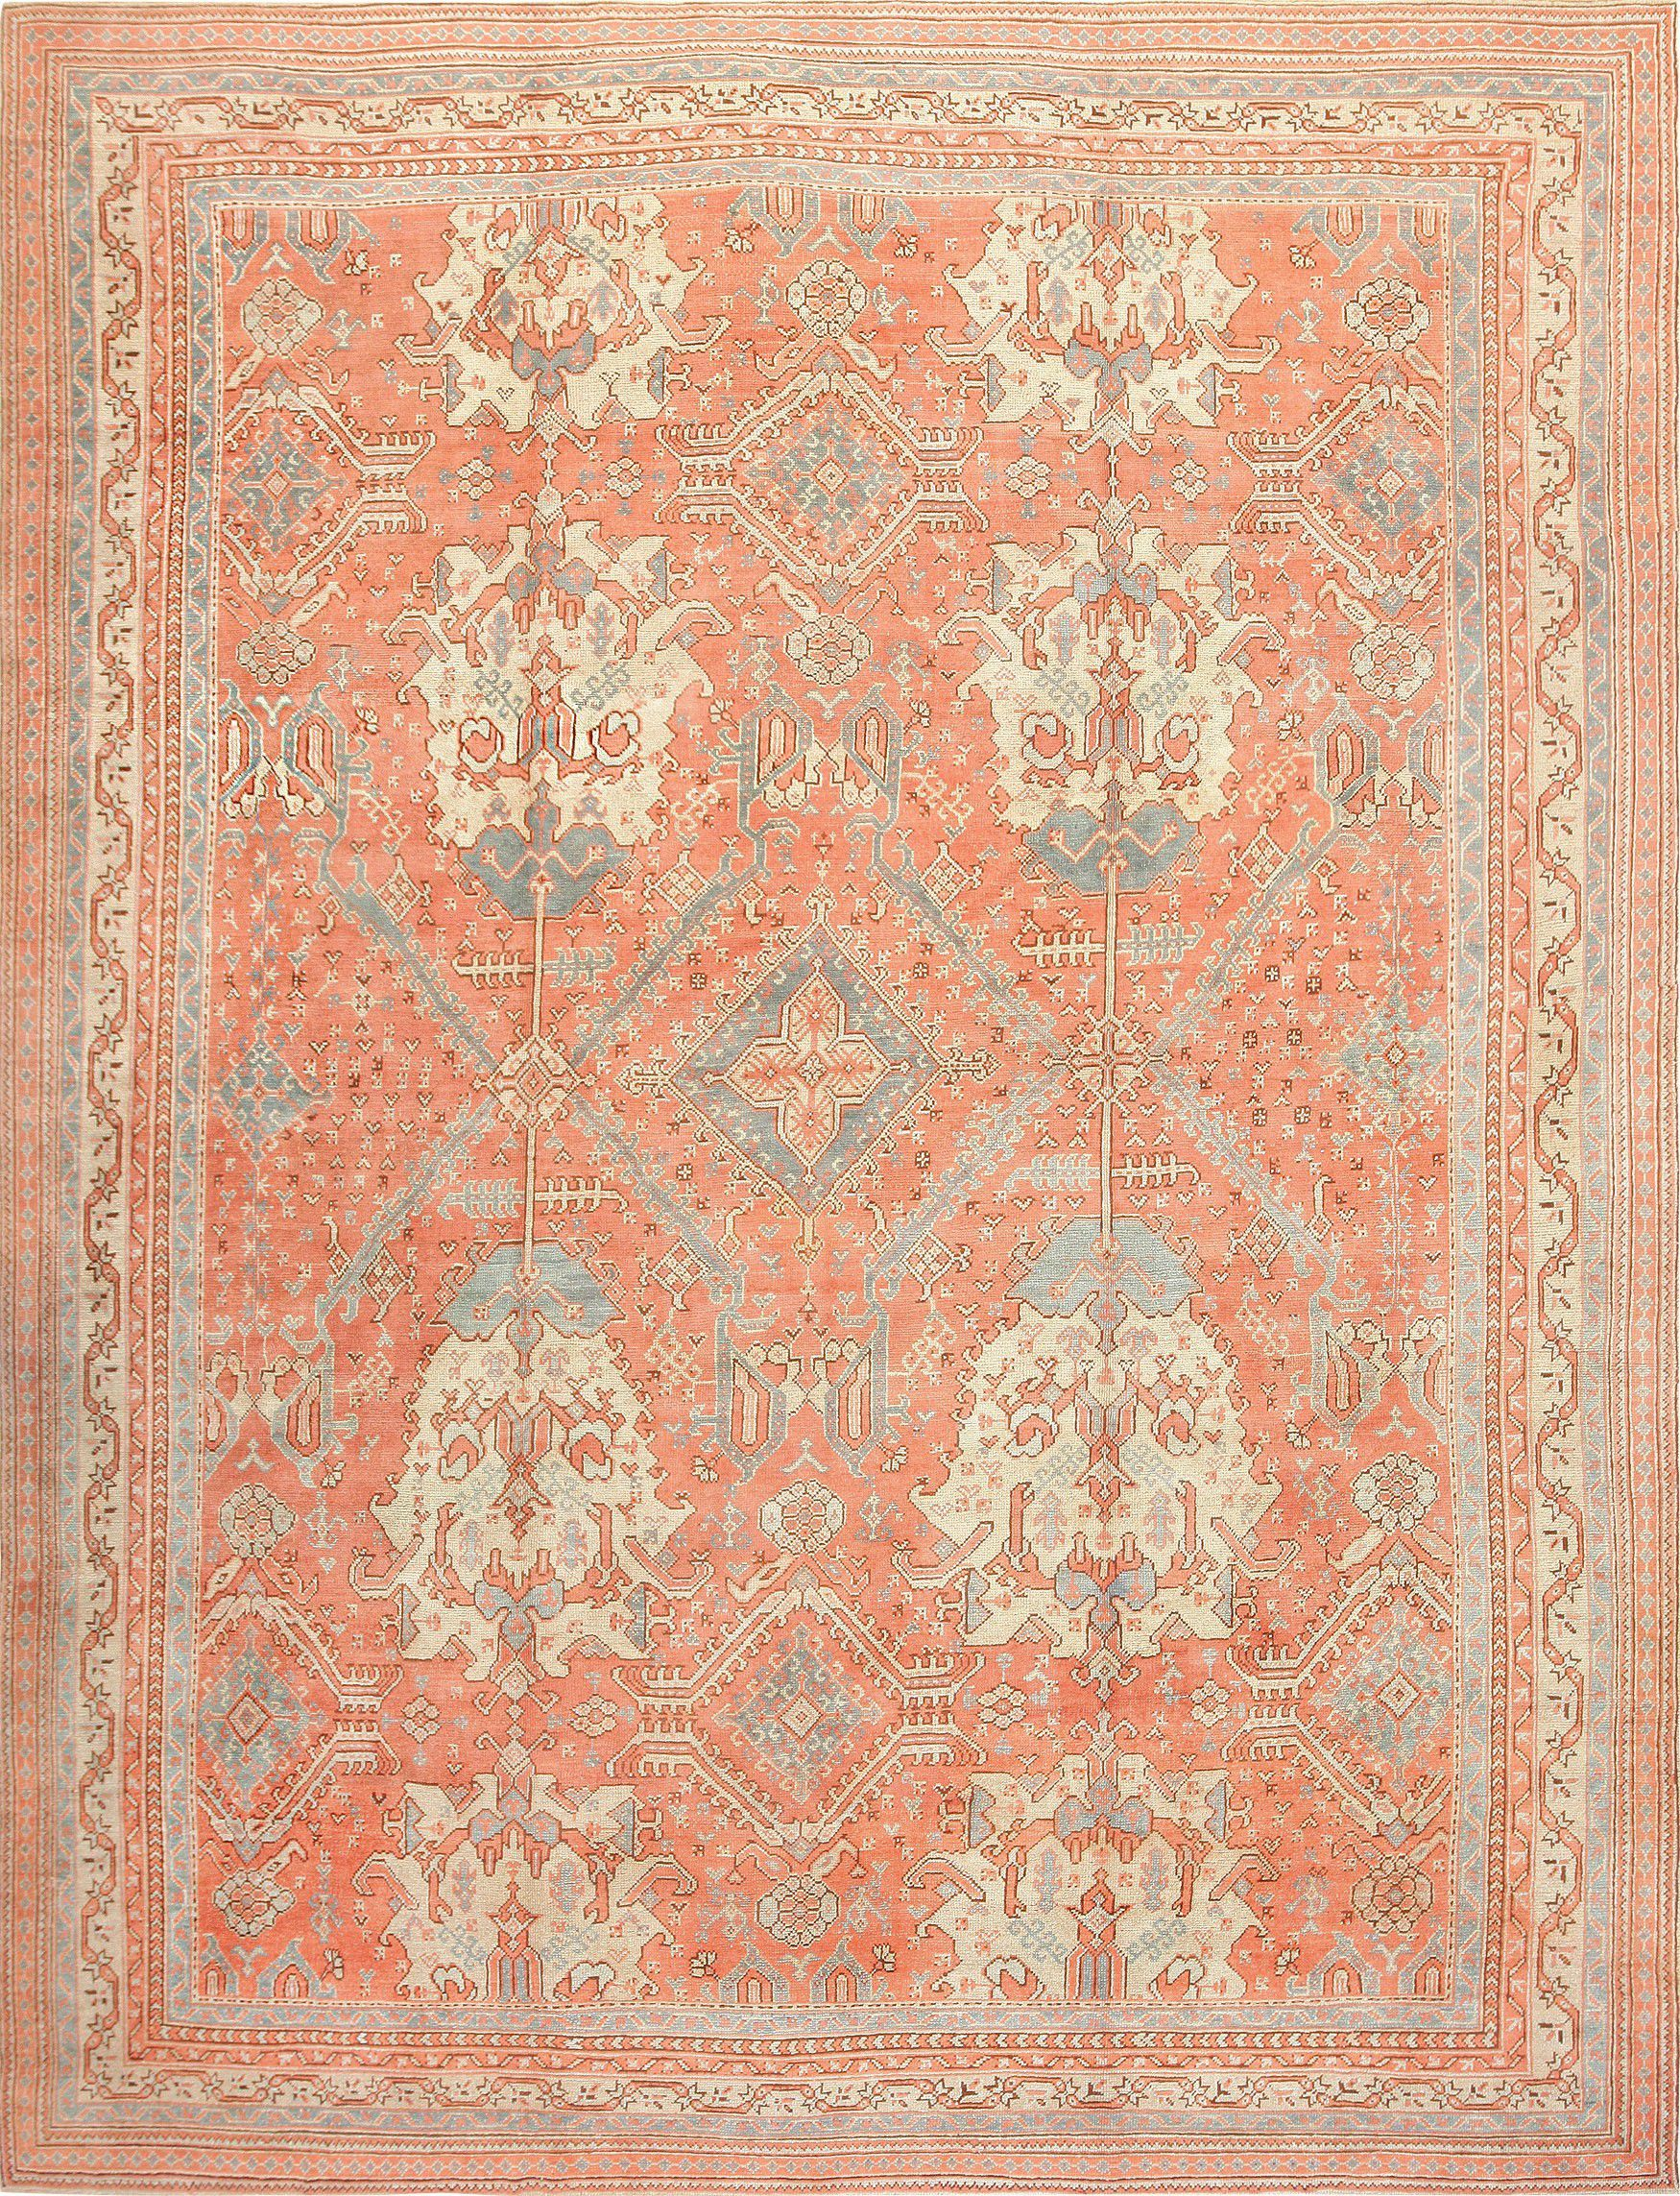 oushak rugs large antique turkish oushak rug 47426 detail/large view GTKCXKH